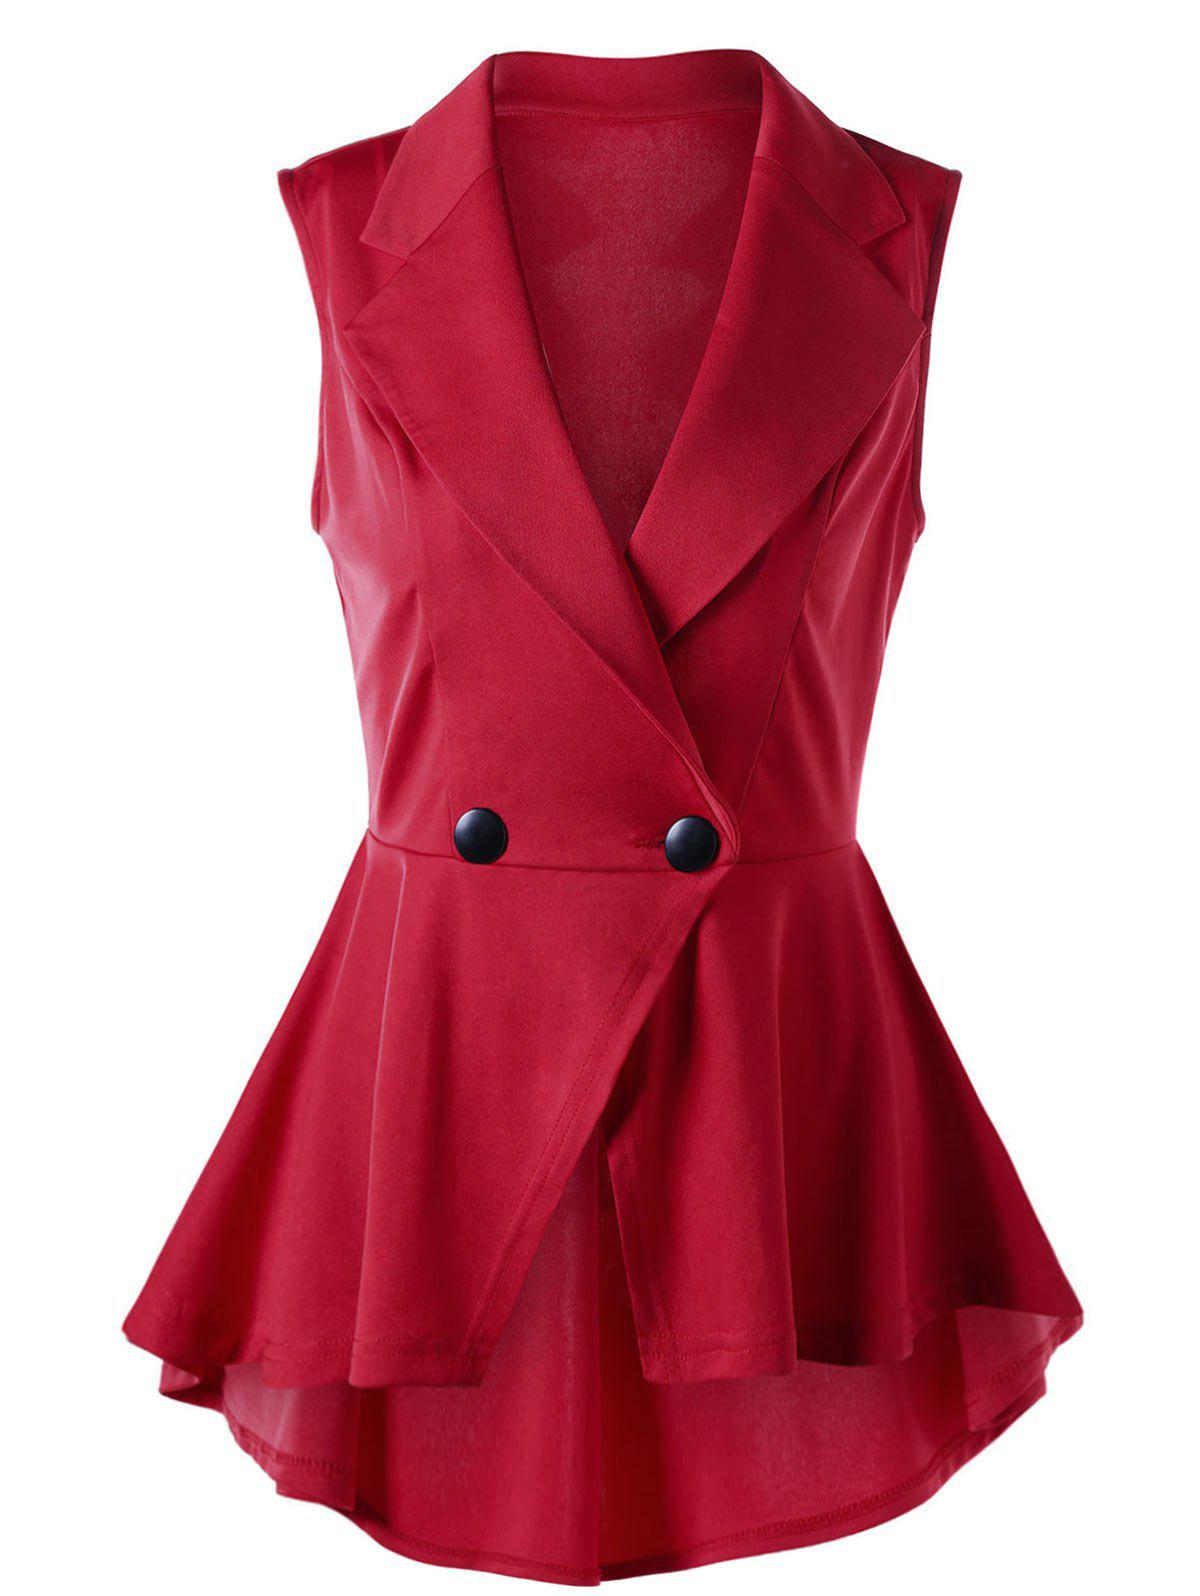 Sleeveless Notched Collar High Low Hem BlouseWOMEN<br><br>Size: XL; Color: RED; Occasion: Formal,Party; Style: Vintage; Material: Polyester,Spandex; Shirt Length: Long; Sleeve Length: Sleeveless; Collar: Notched Collar; Pattern Type: Solid; Embellishment: Button; Season: Summer; Weight: 0.2900kg; Package Contents: 1 x Blouse;